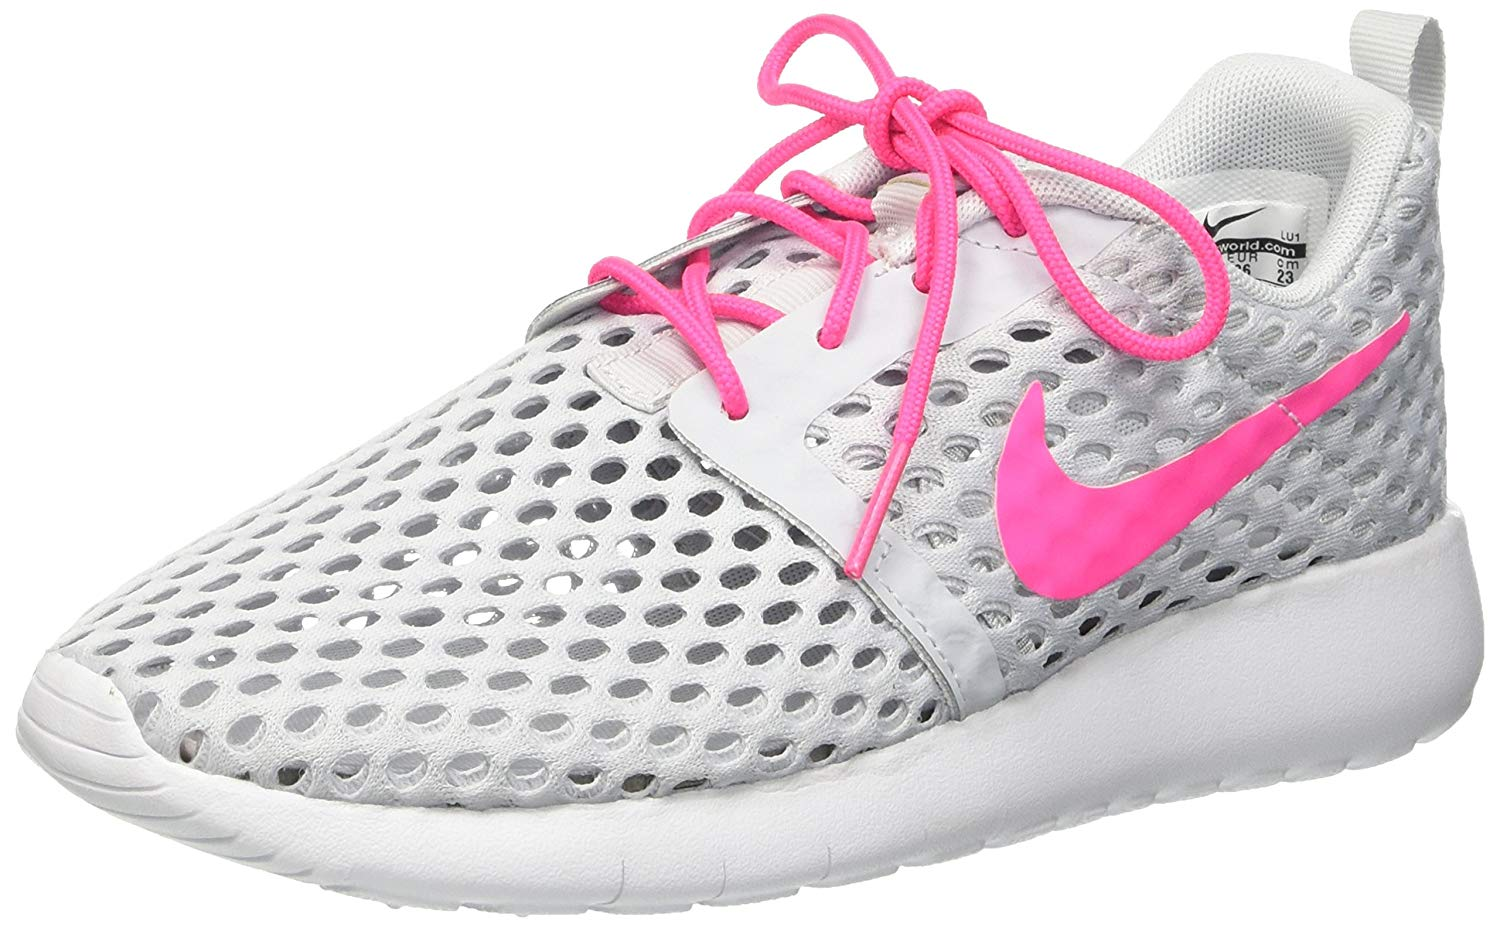 dfbda2803c9d NIKE Roshe one Flight Weight (GS) Trainers 705486 Sneakers Shoes (US 4.5 Big